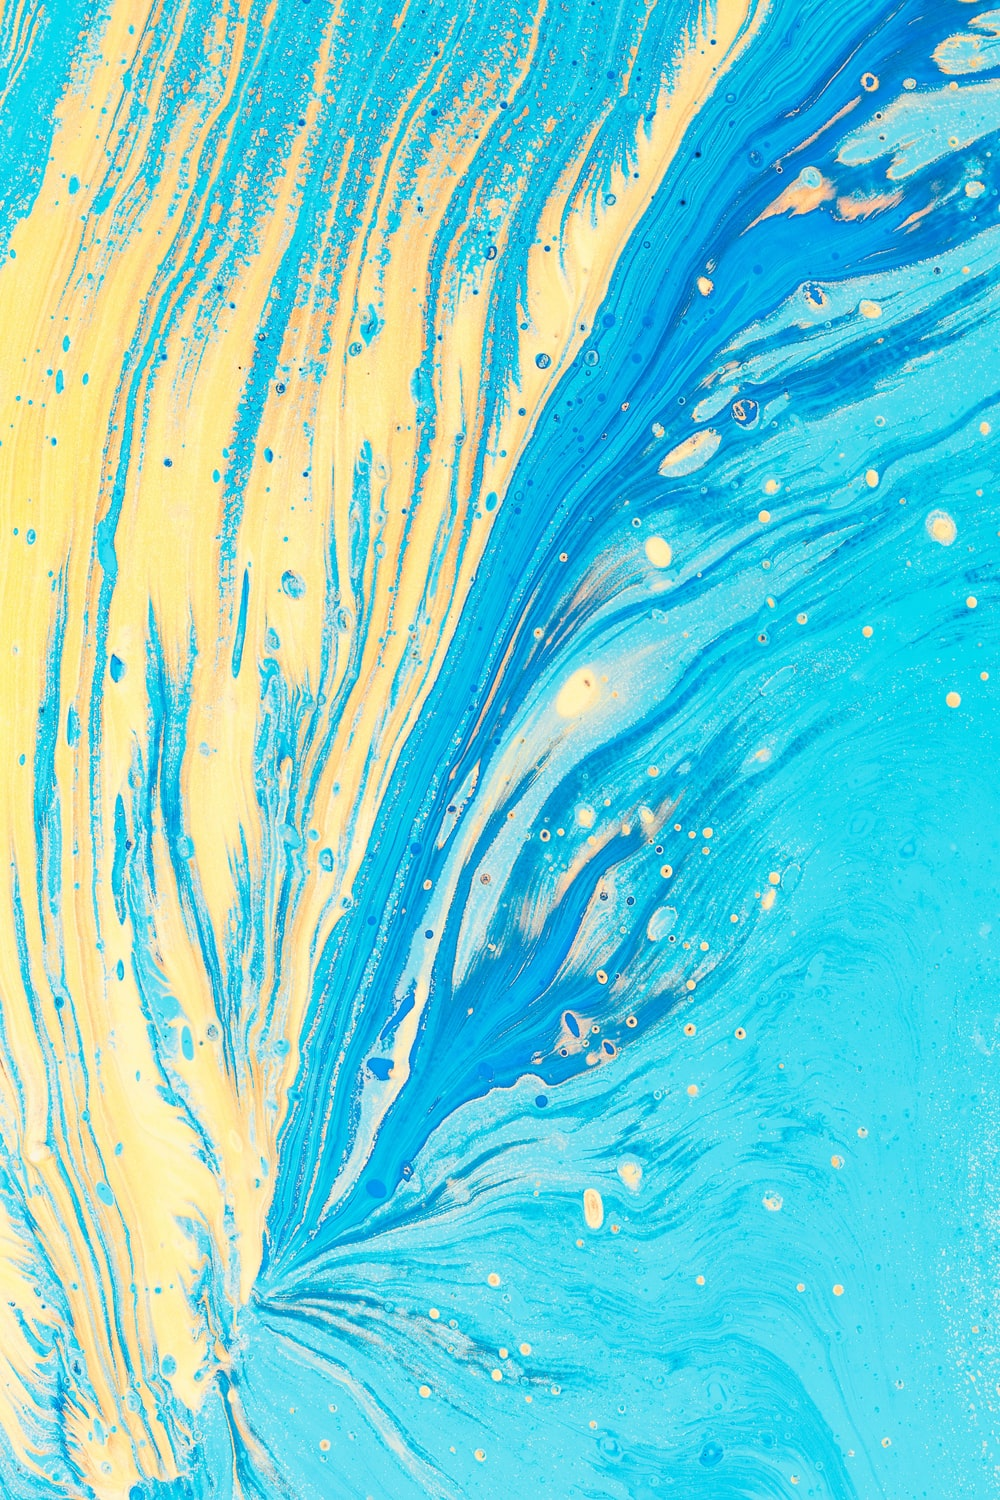 blue and yellow abstract artwork